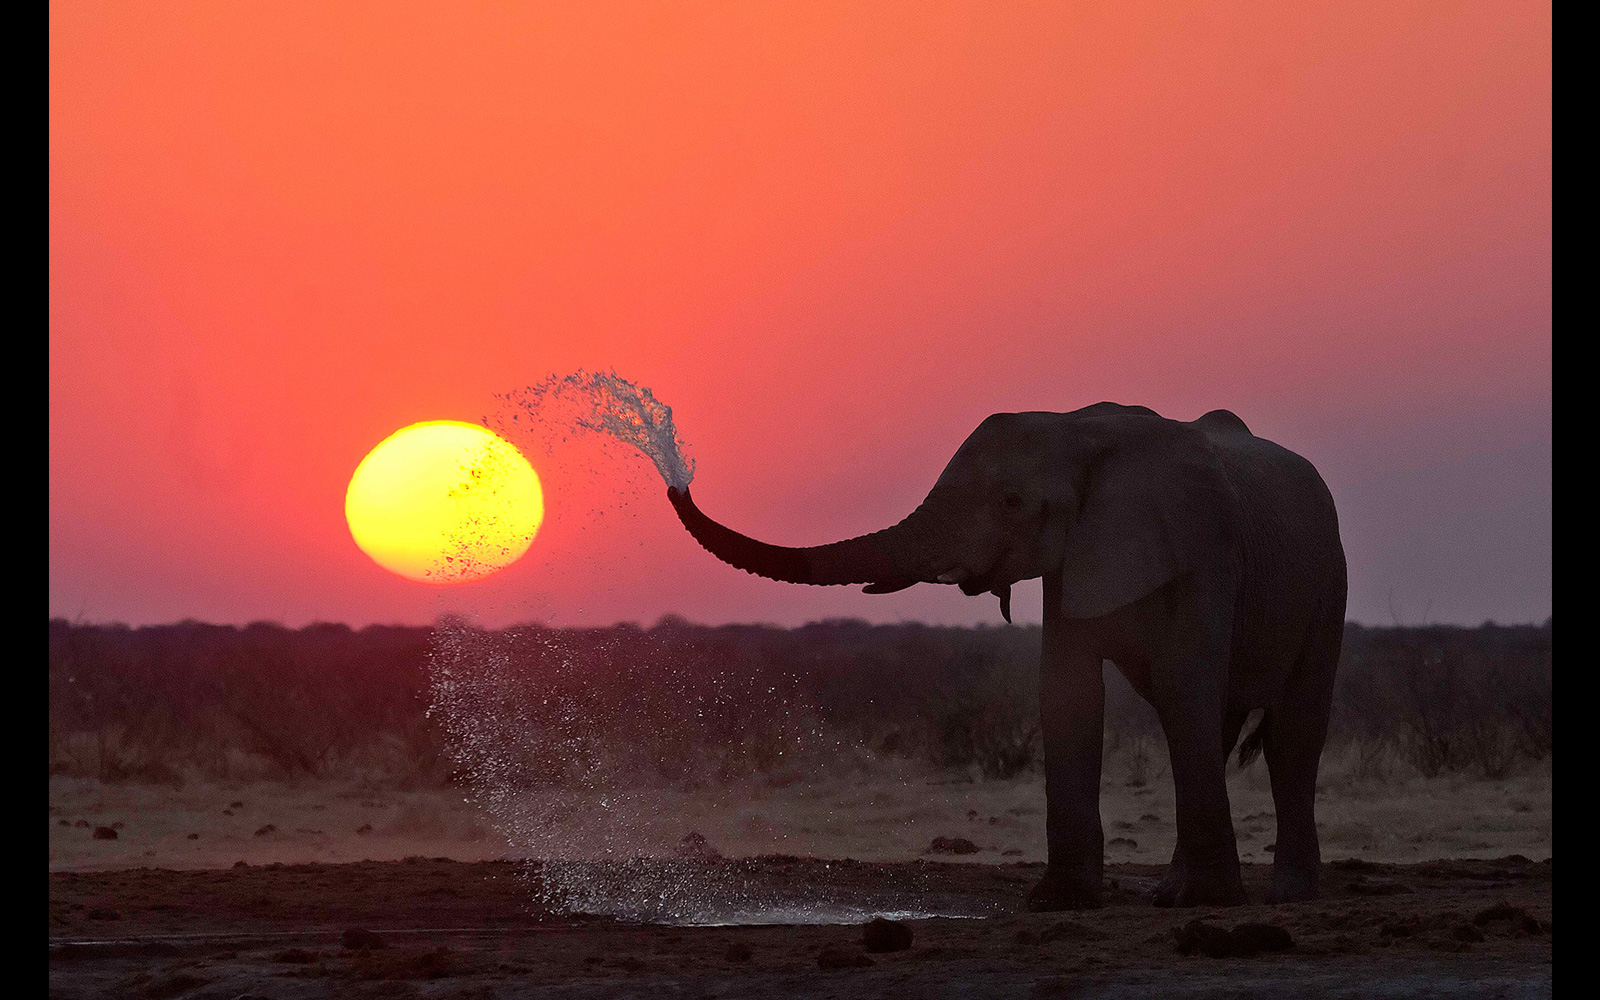 """Elephant sunset"" in Etosha National Park, Namibia © Johan J. Botha (Photographer of the Year 2018 entrant)"